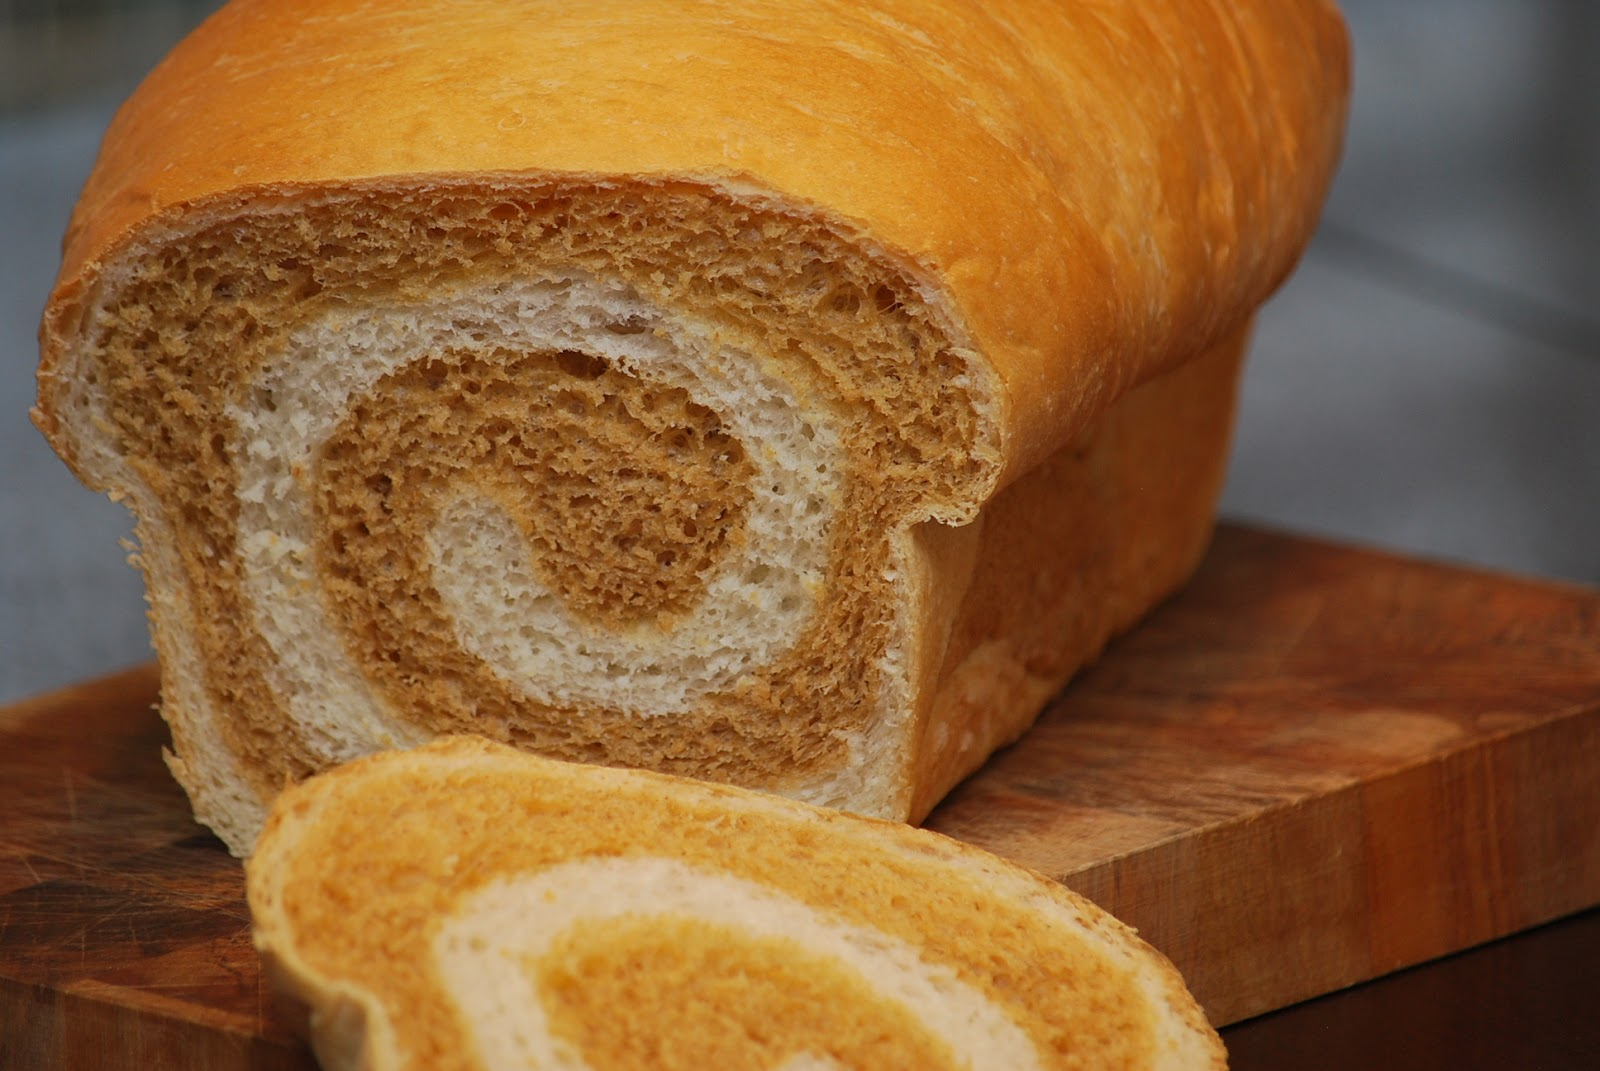 My story in recipes: Swirled Bread